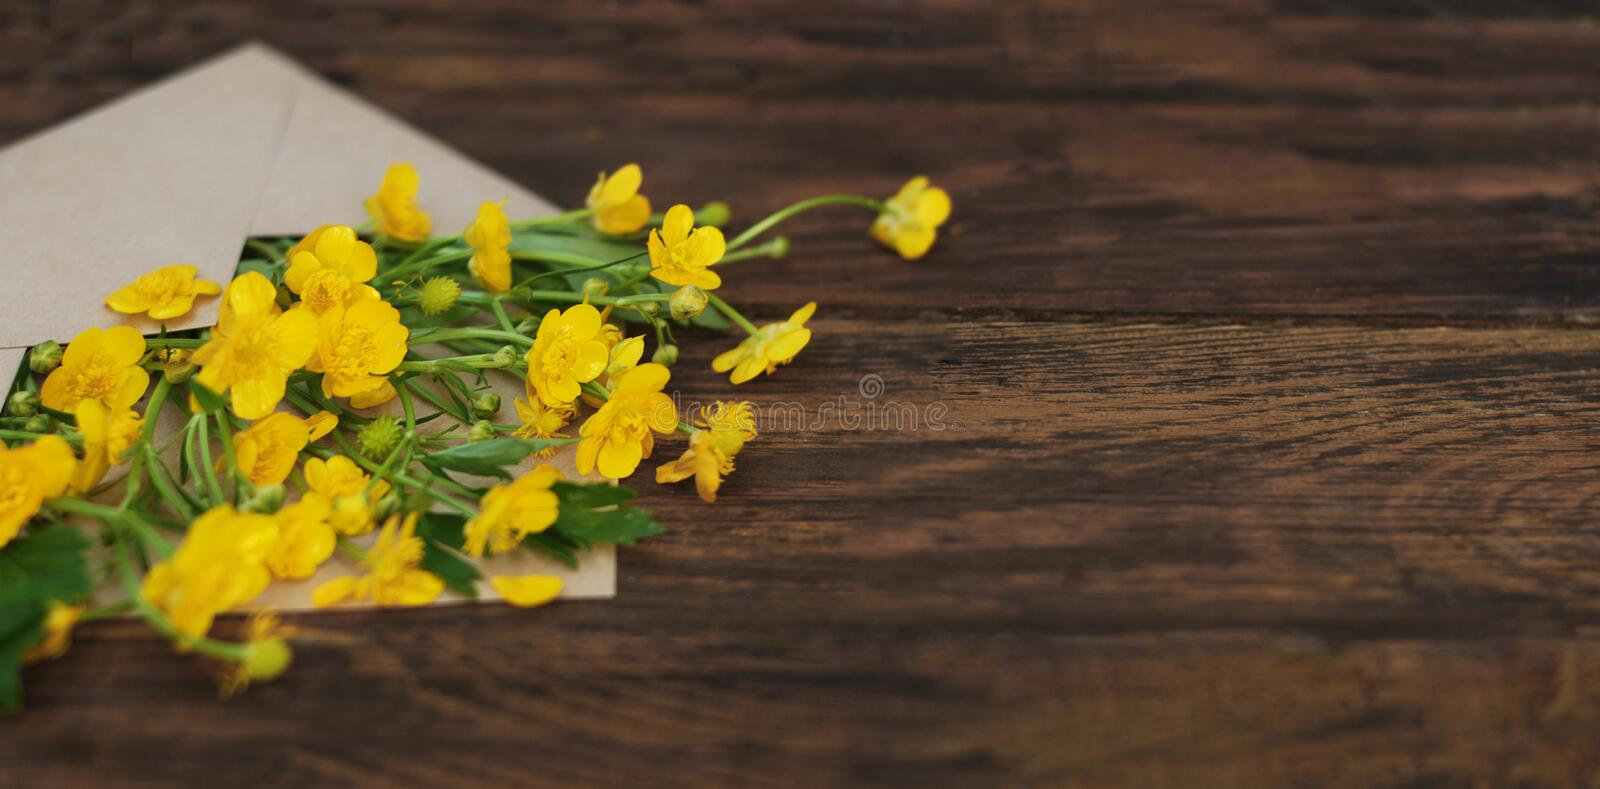 Yellow Little Flowers in Envelope Rustic Wooden Background Banner Flat Lay. Yellow Little Flowers in Envelope Rustic Wooden Background Banner royalty free stock photos